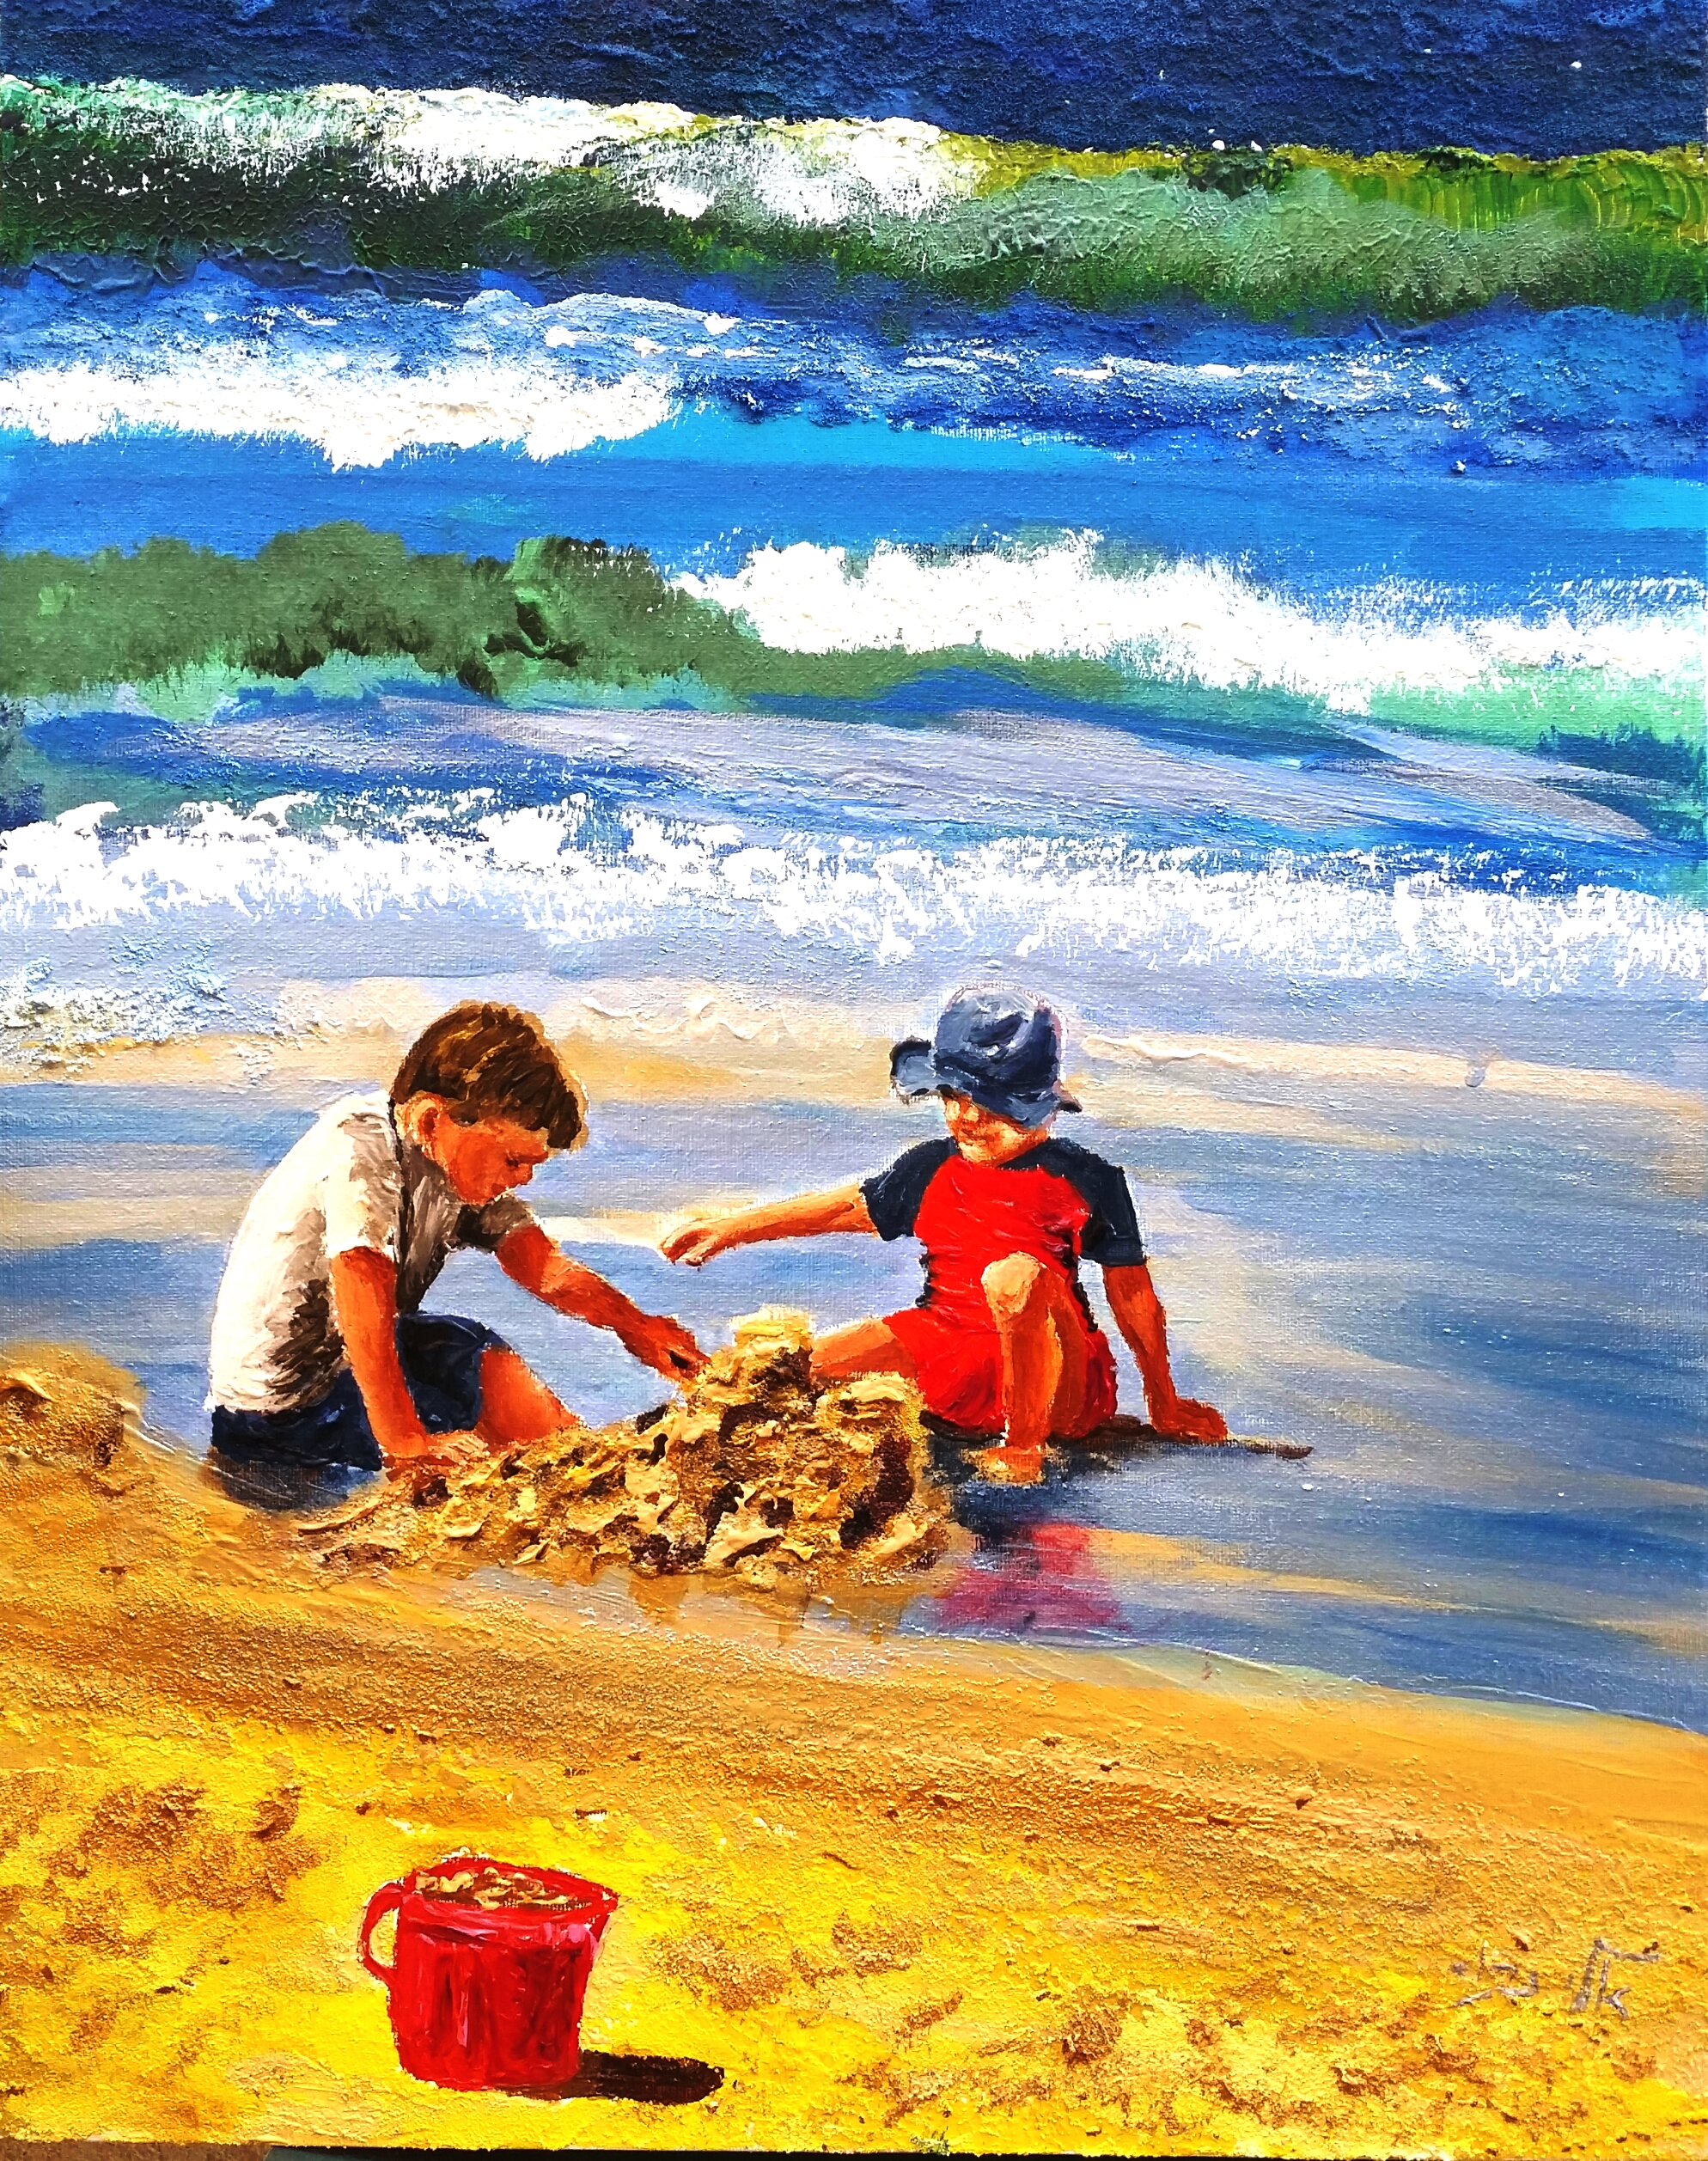 Children build their houses with sand, and they play with empty shells.